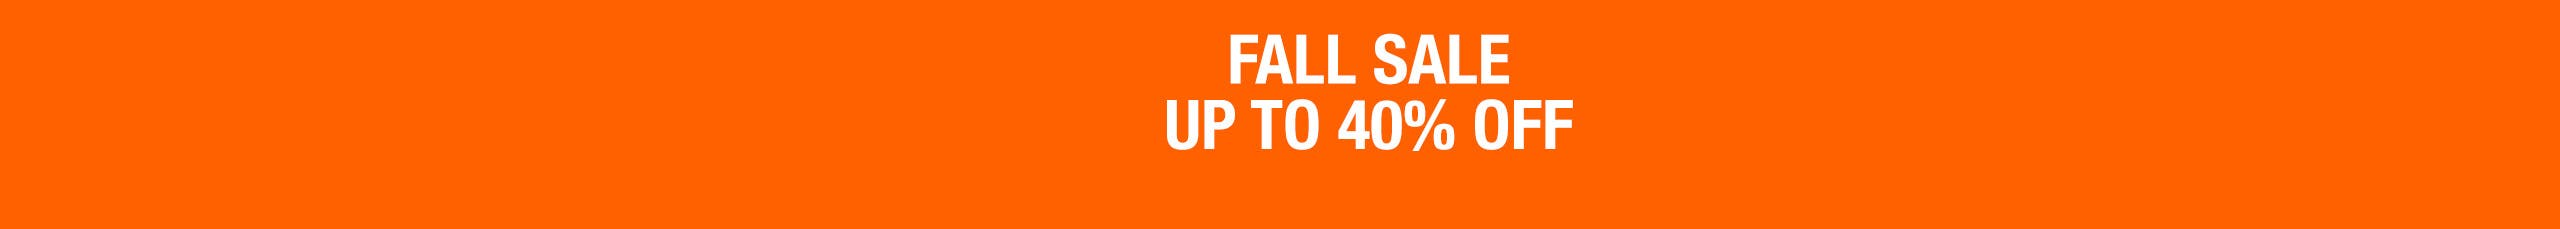 Fall sale: up to 40% off.